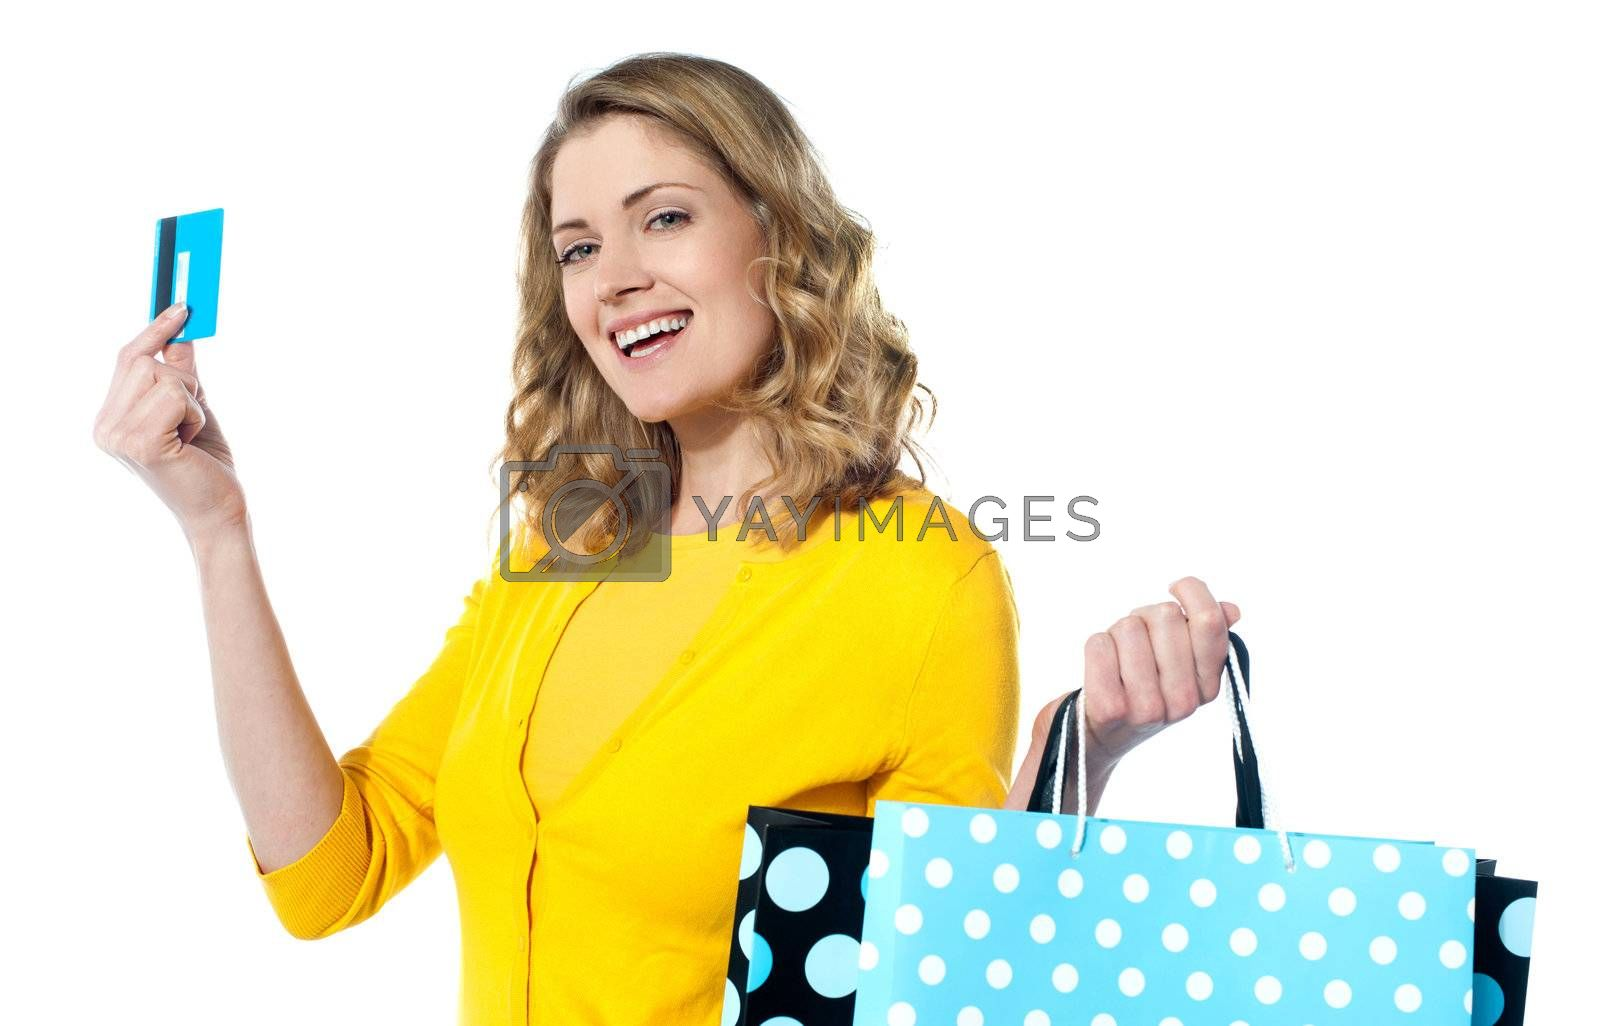 Attractive woman holding cerdit-card with shopping bags smiling against white background